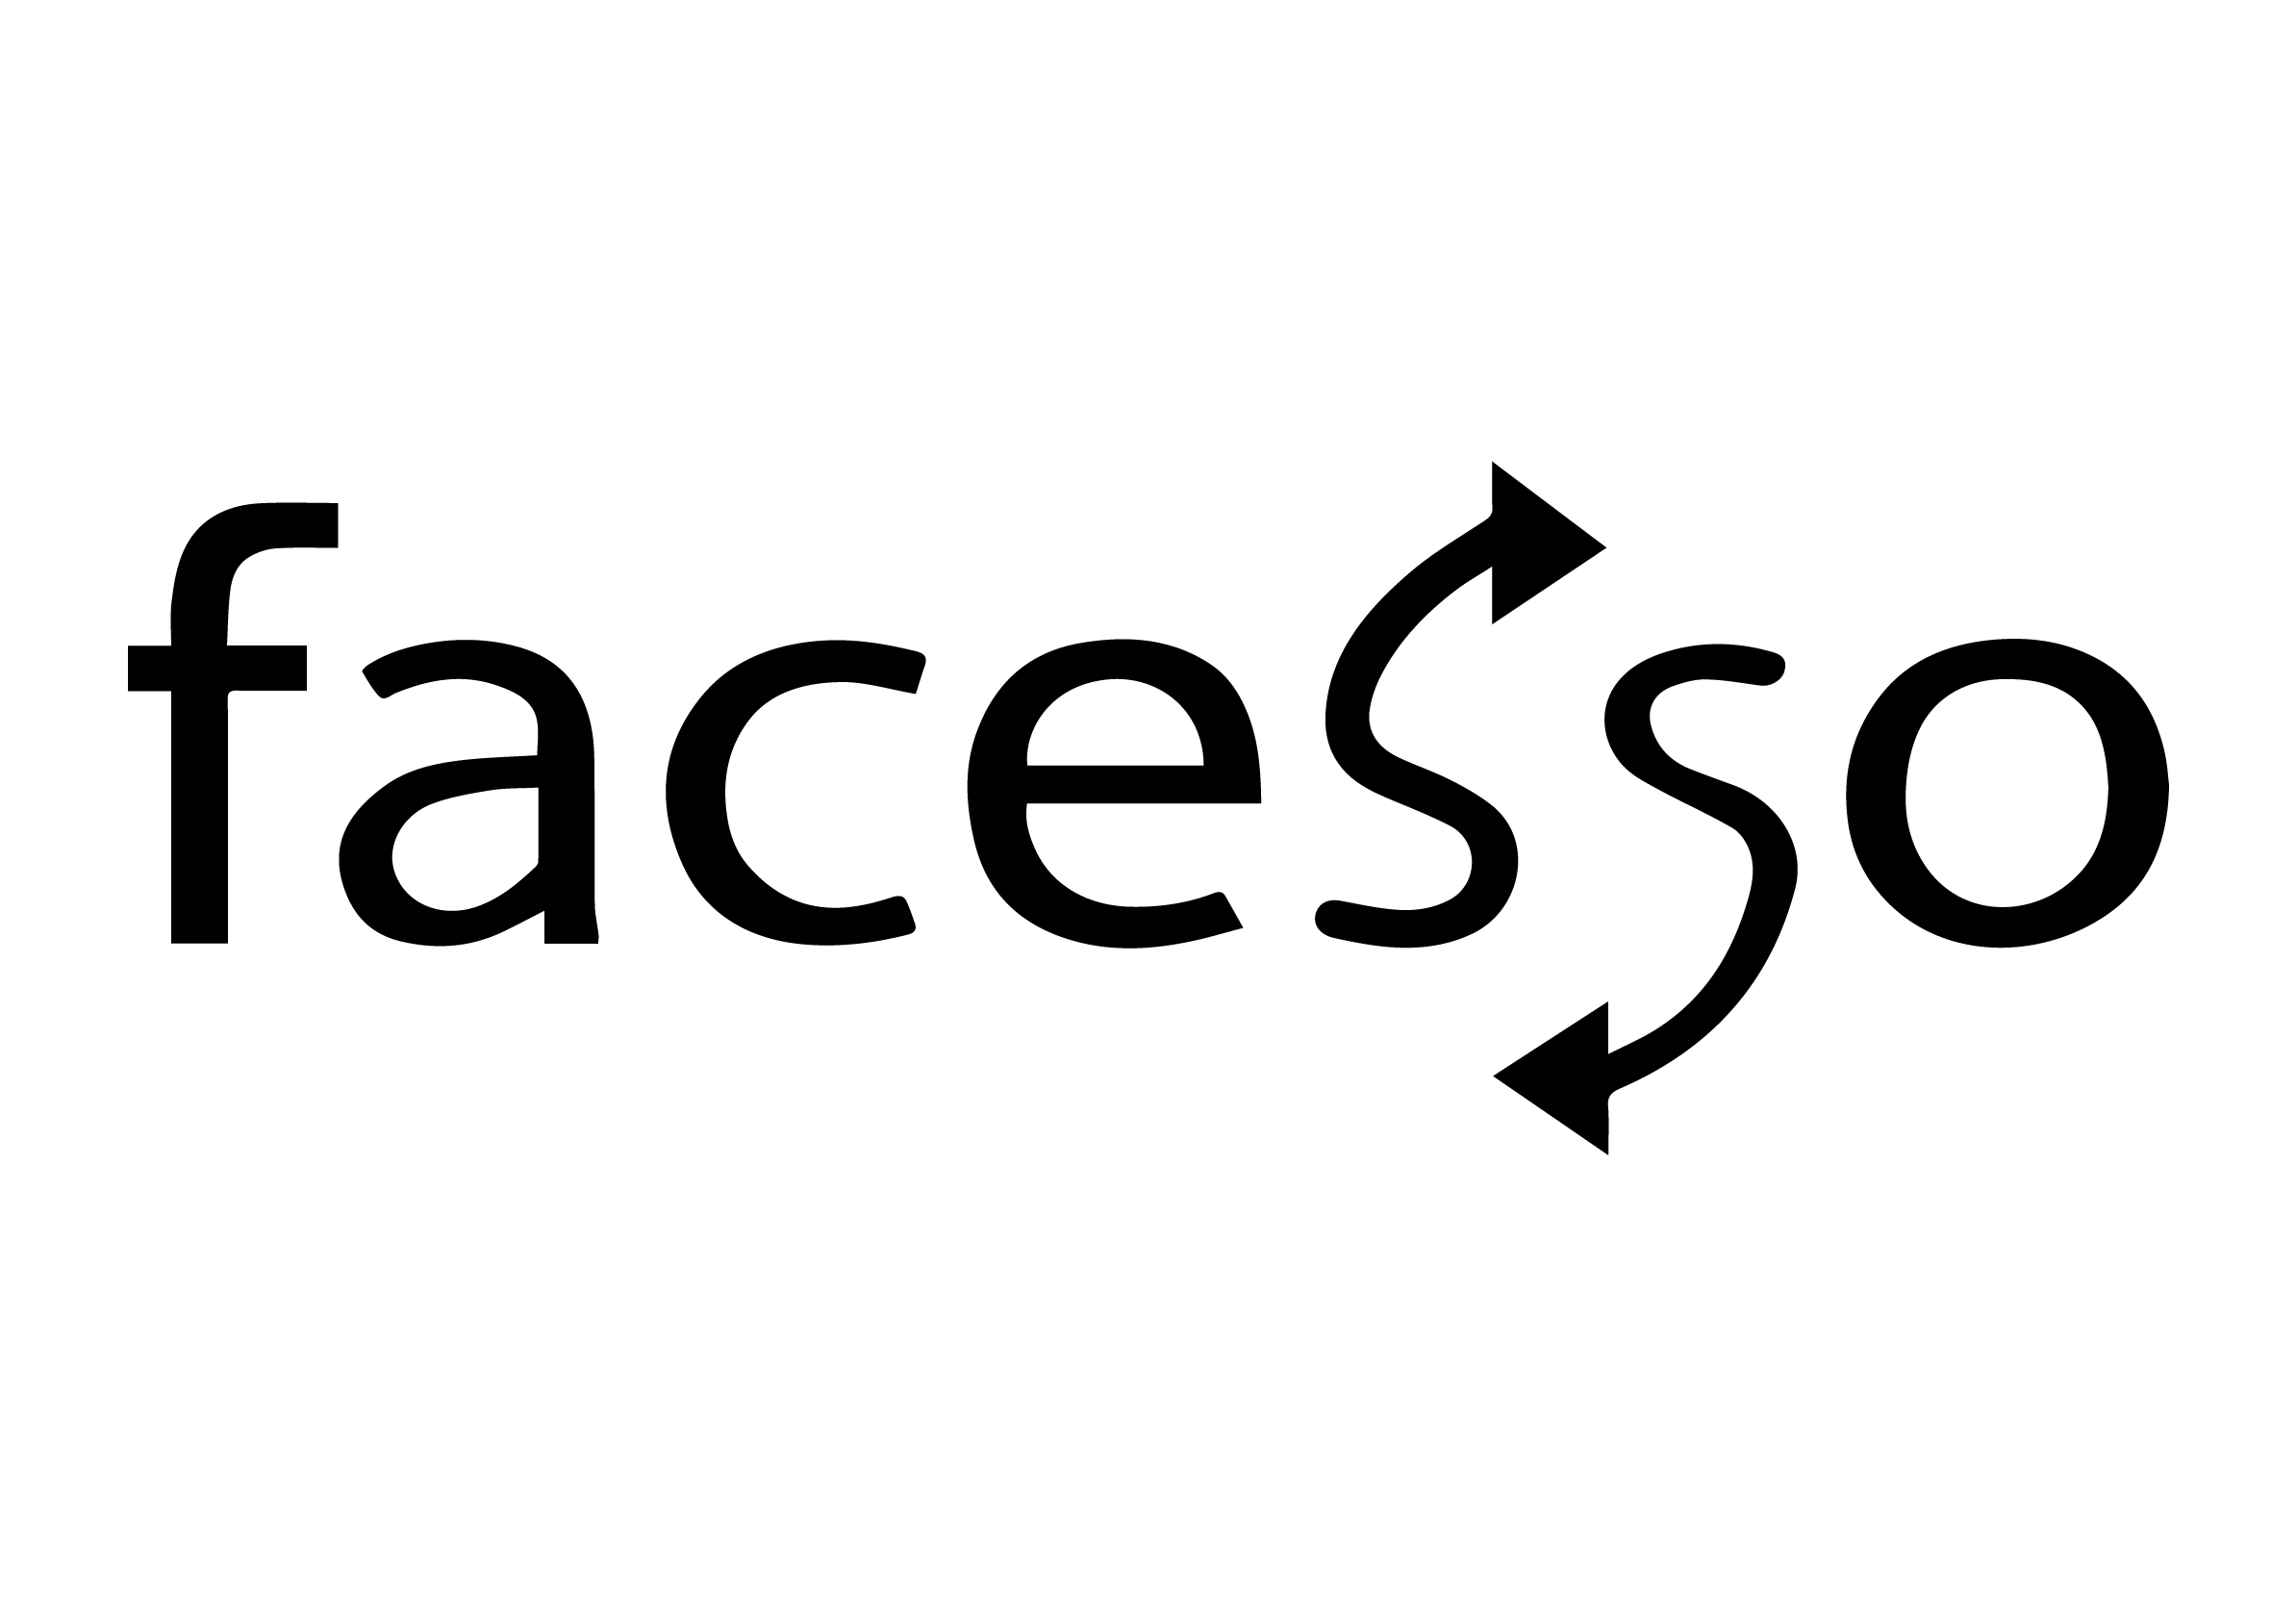 Facesso.png